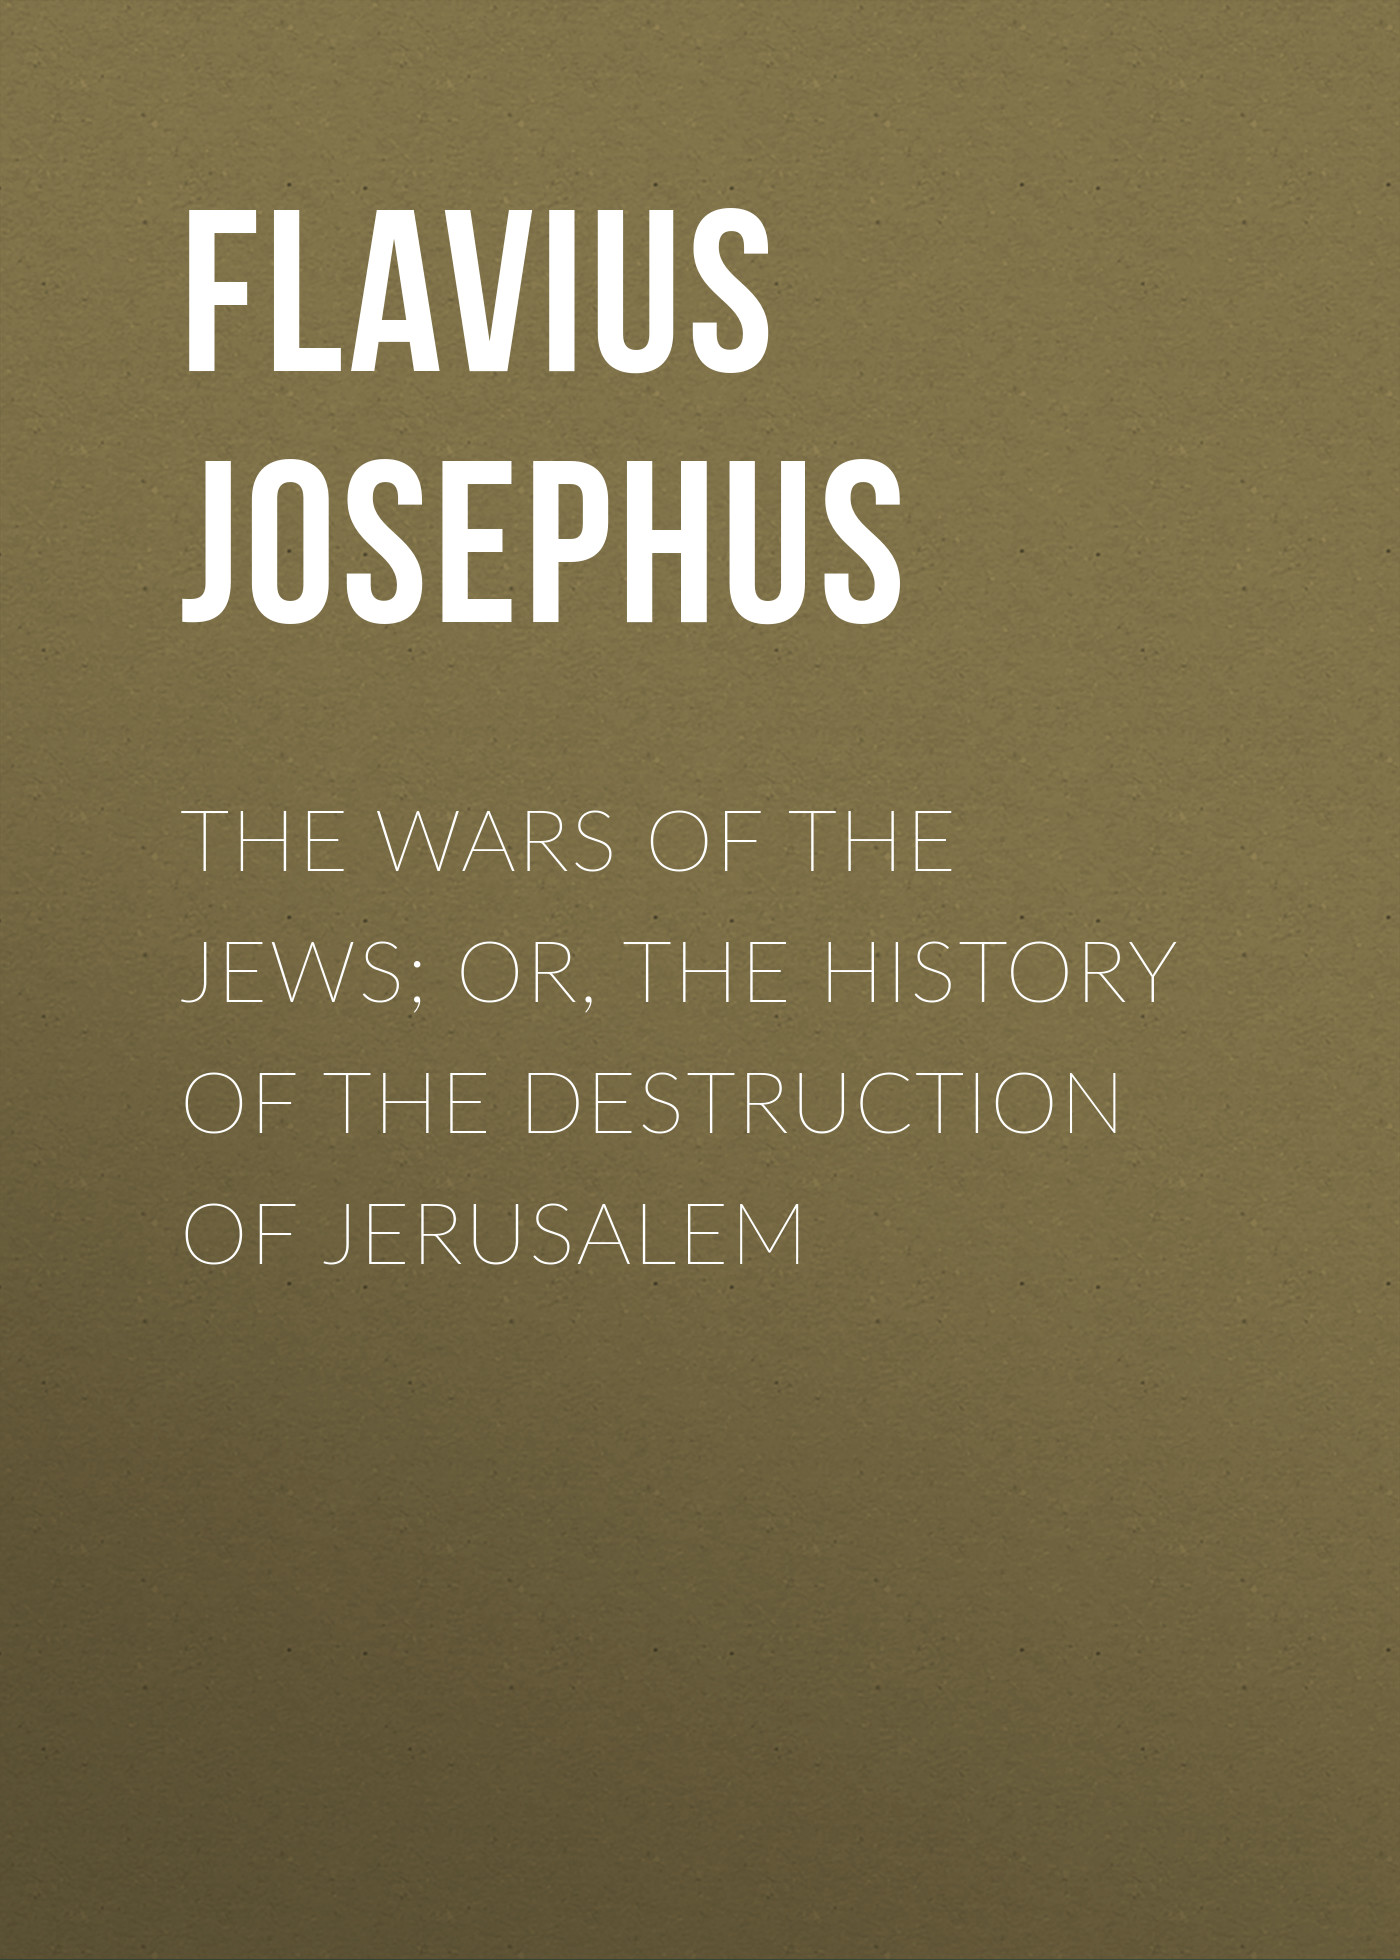 Flavius Josephus The Wars of the Jews; Or, The History of the Destruction of Jerusalem the 9 11 wars